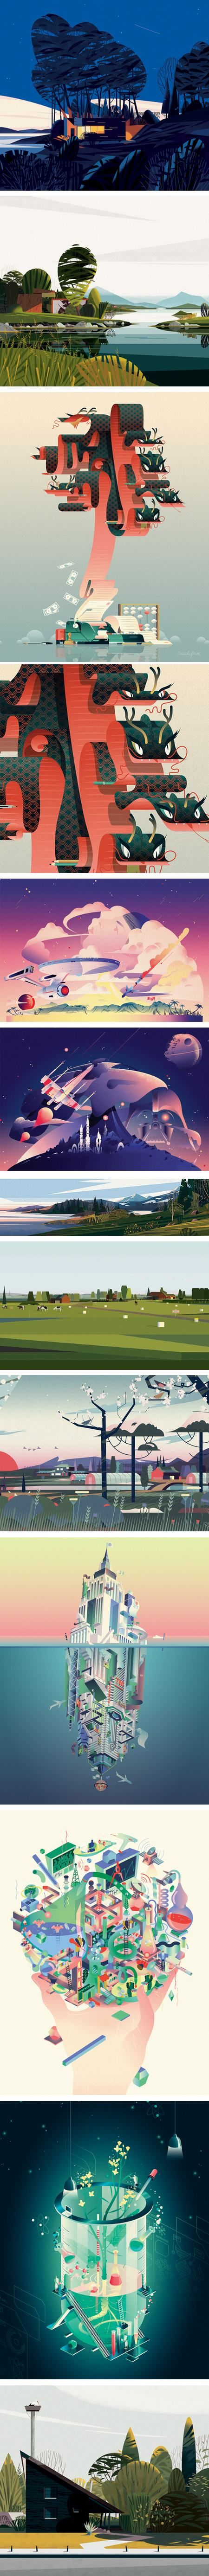 Marie-Laure Cruschi (Cruschiform), Cabins and other vector illustrations